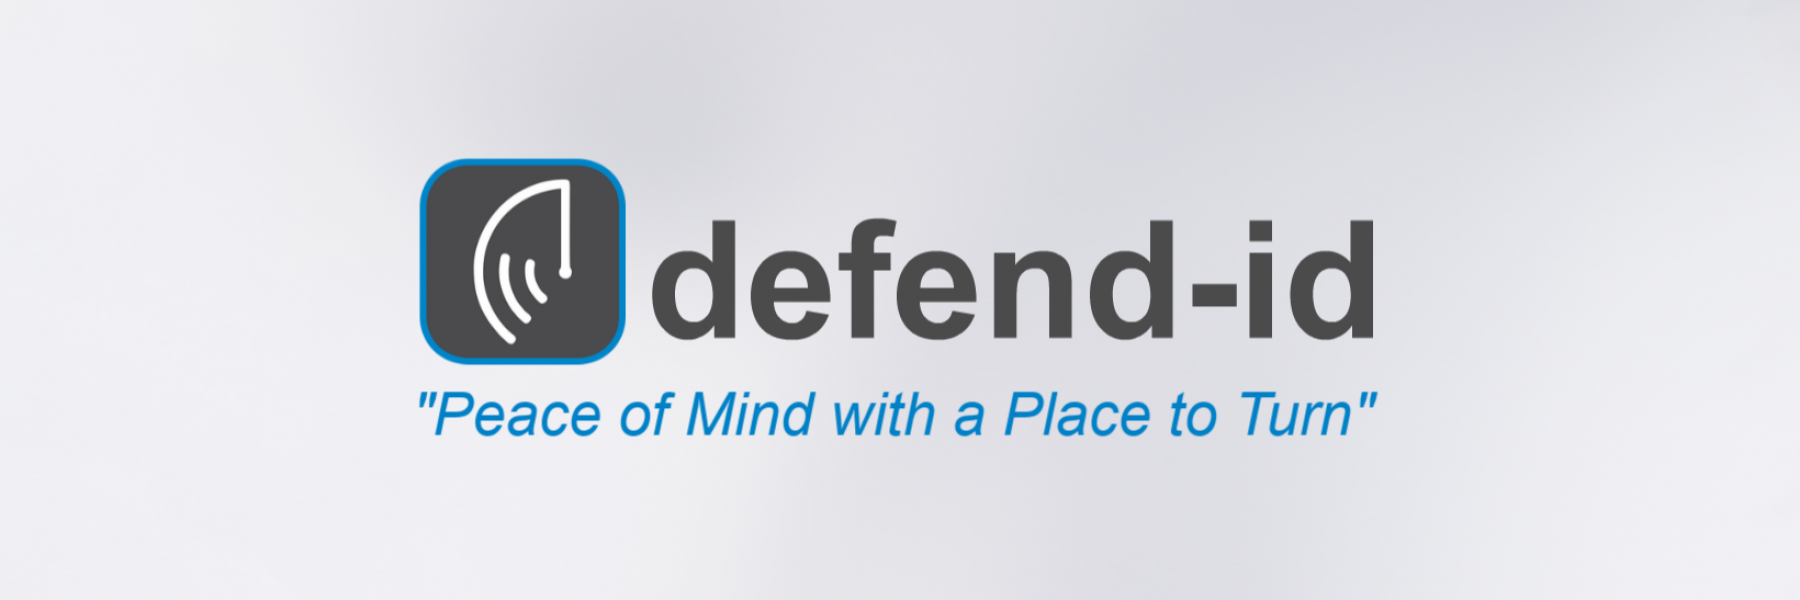 defend-id